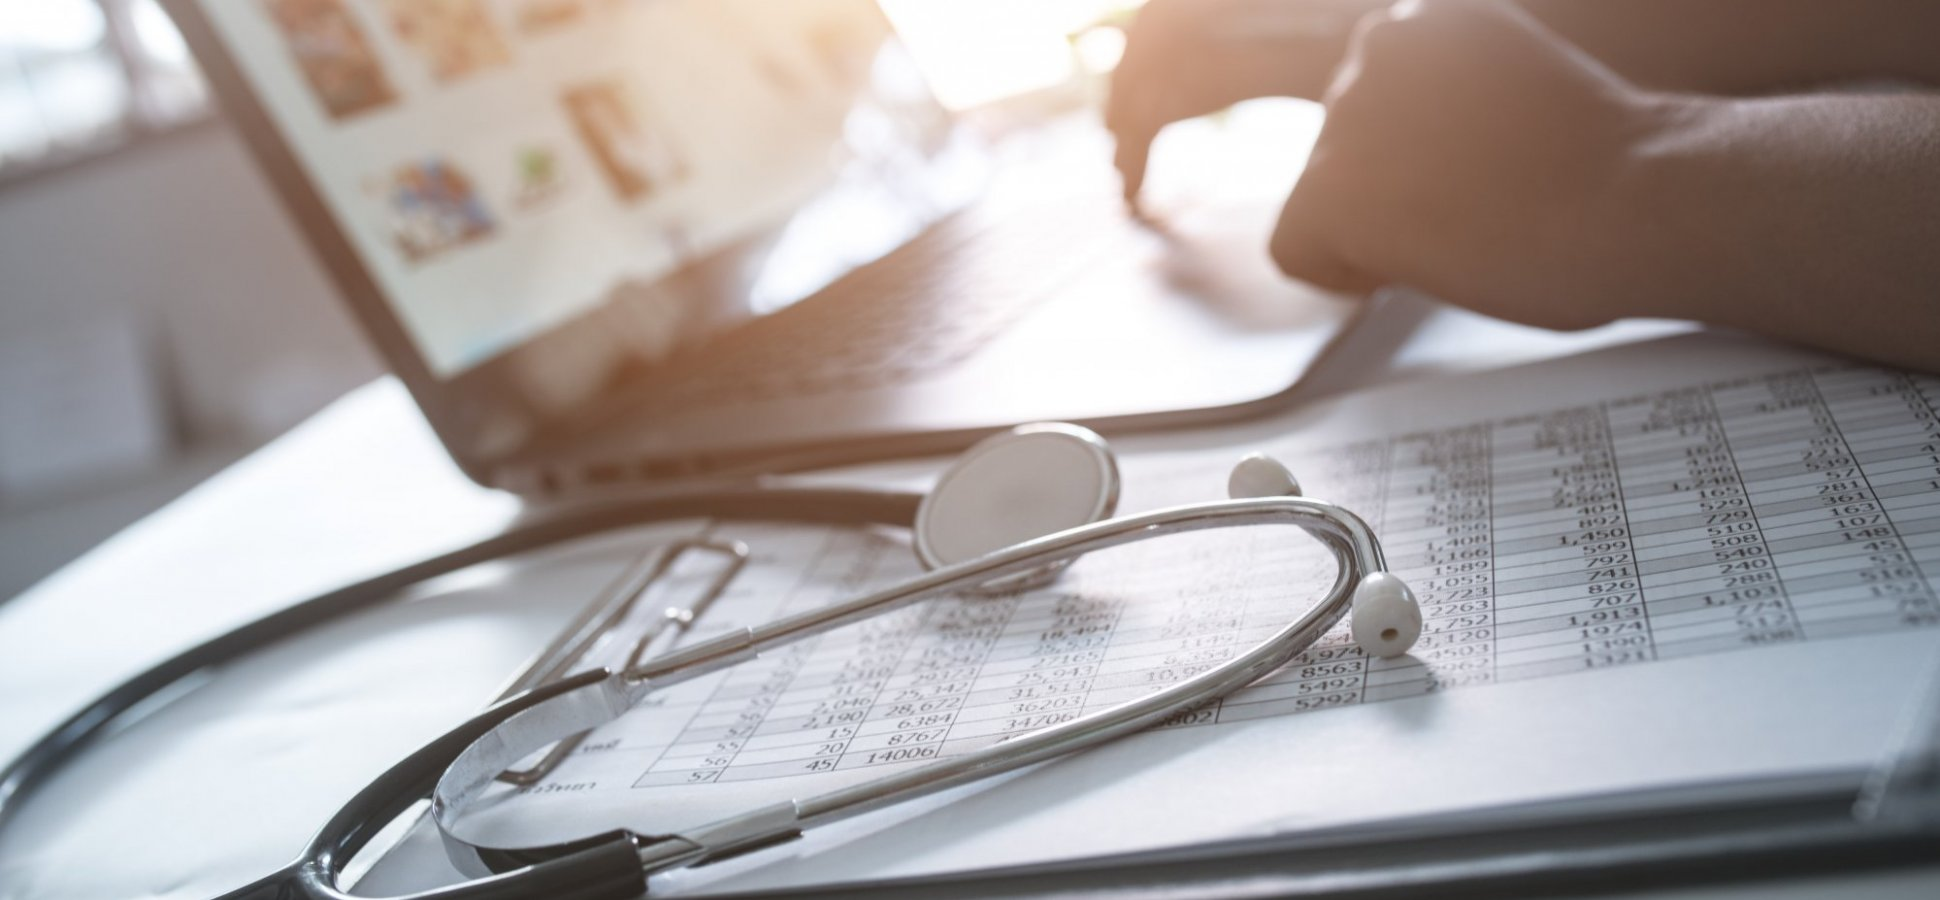 The 6 Best Ways to Get Health Insurance When You're Self-Employed